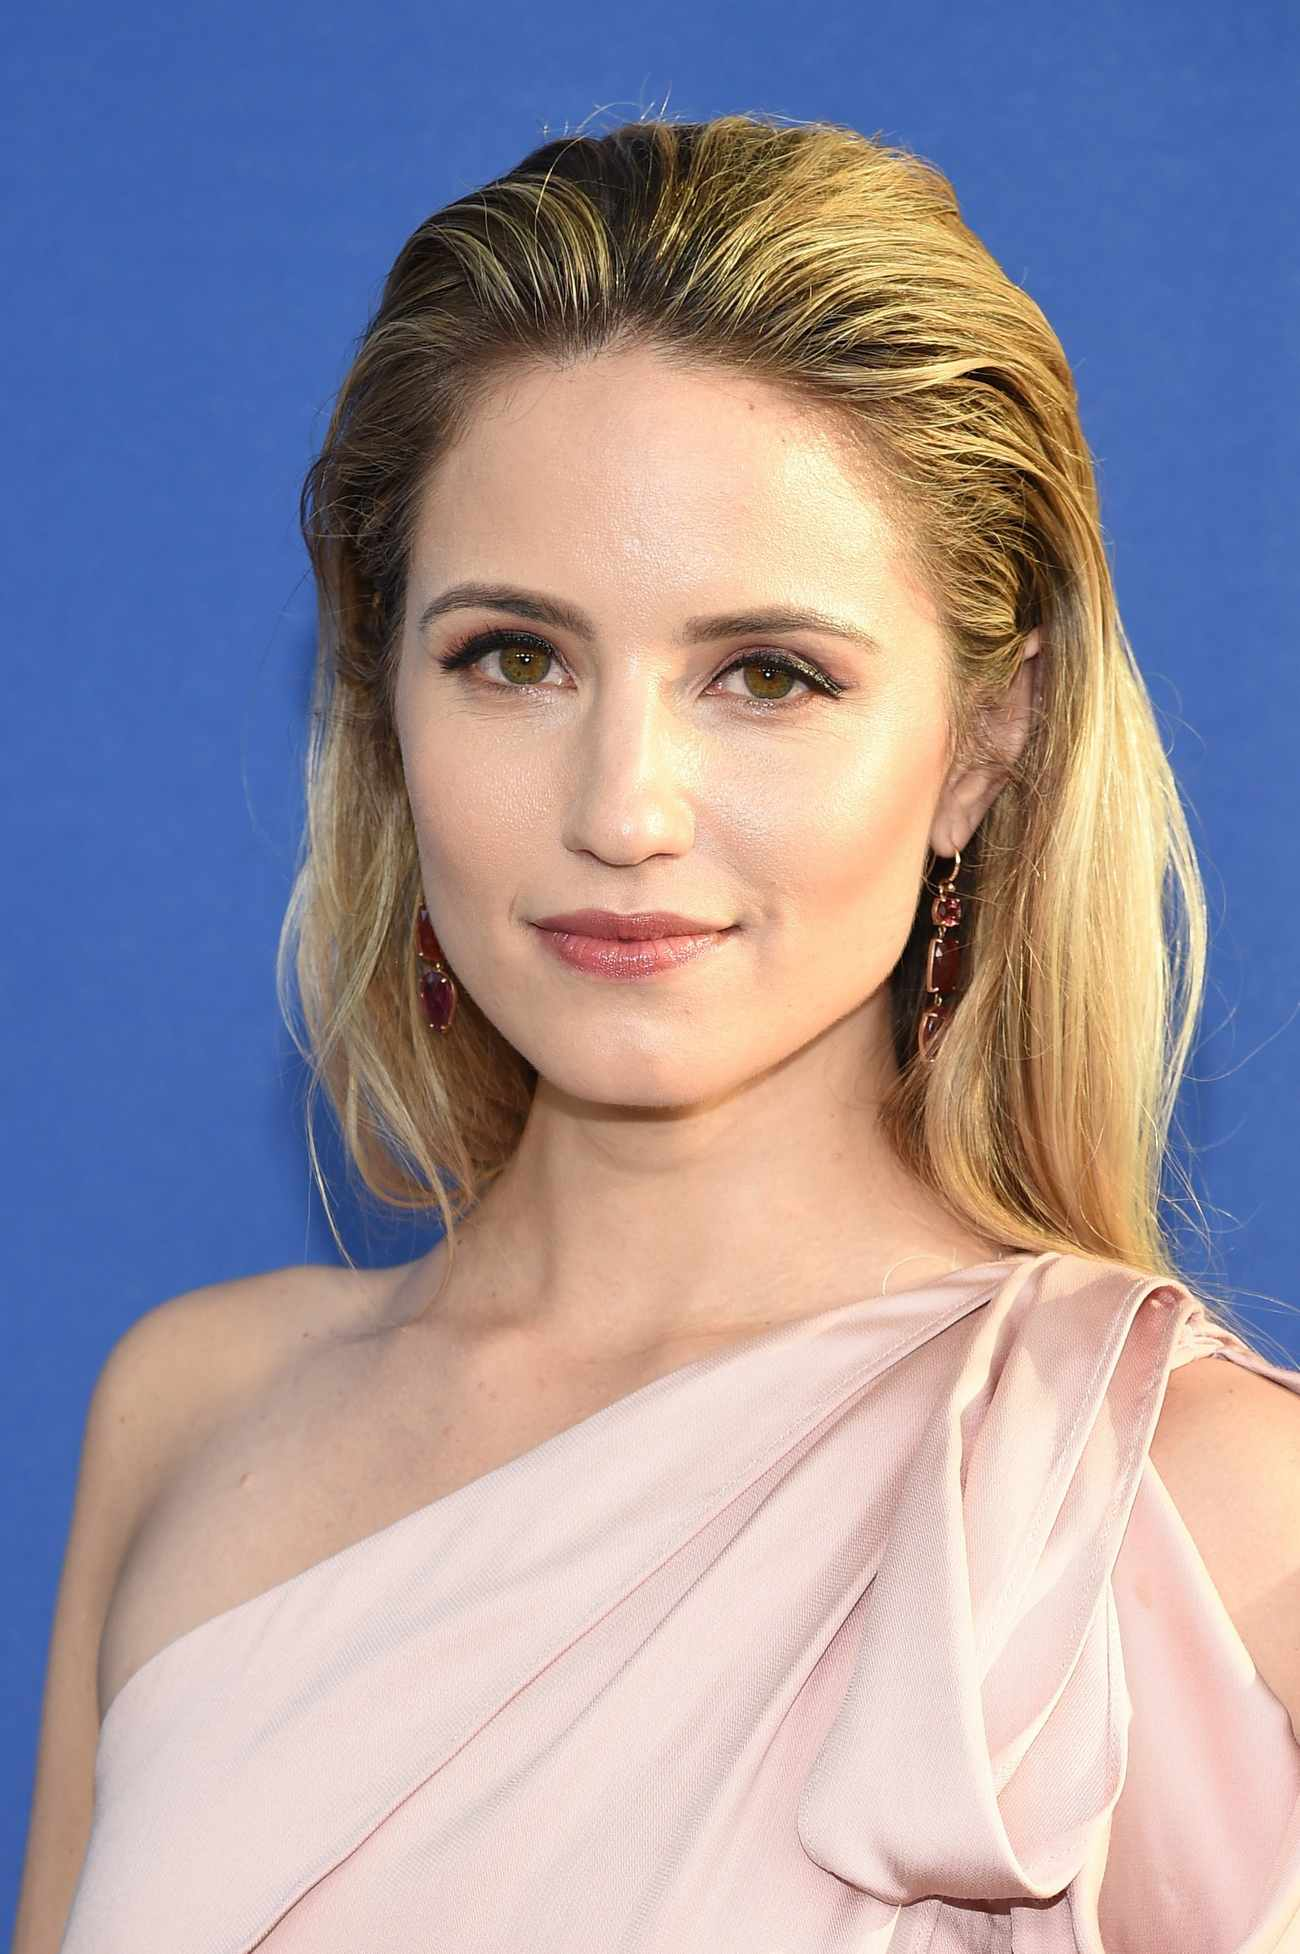 Communication on this topic: Abby Hagyard, dianna-agron-born-april-30-1986-age/